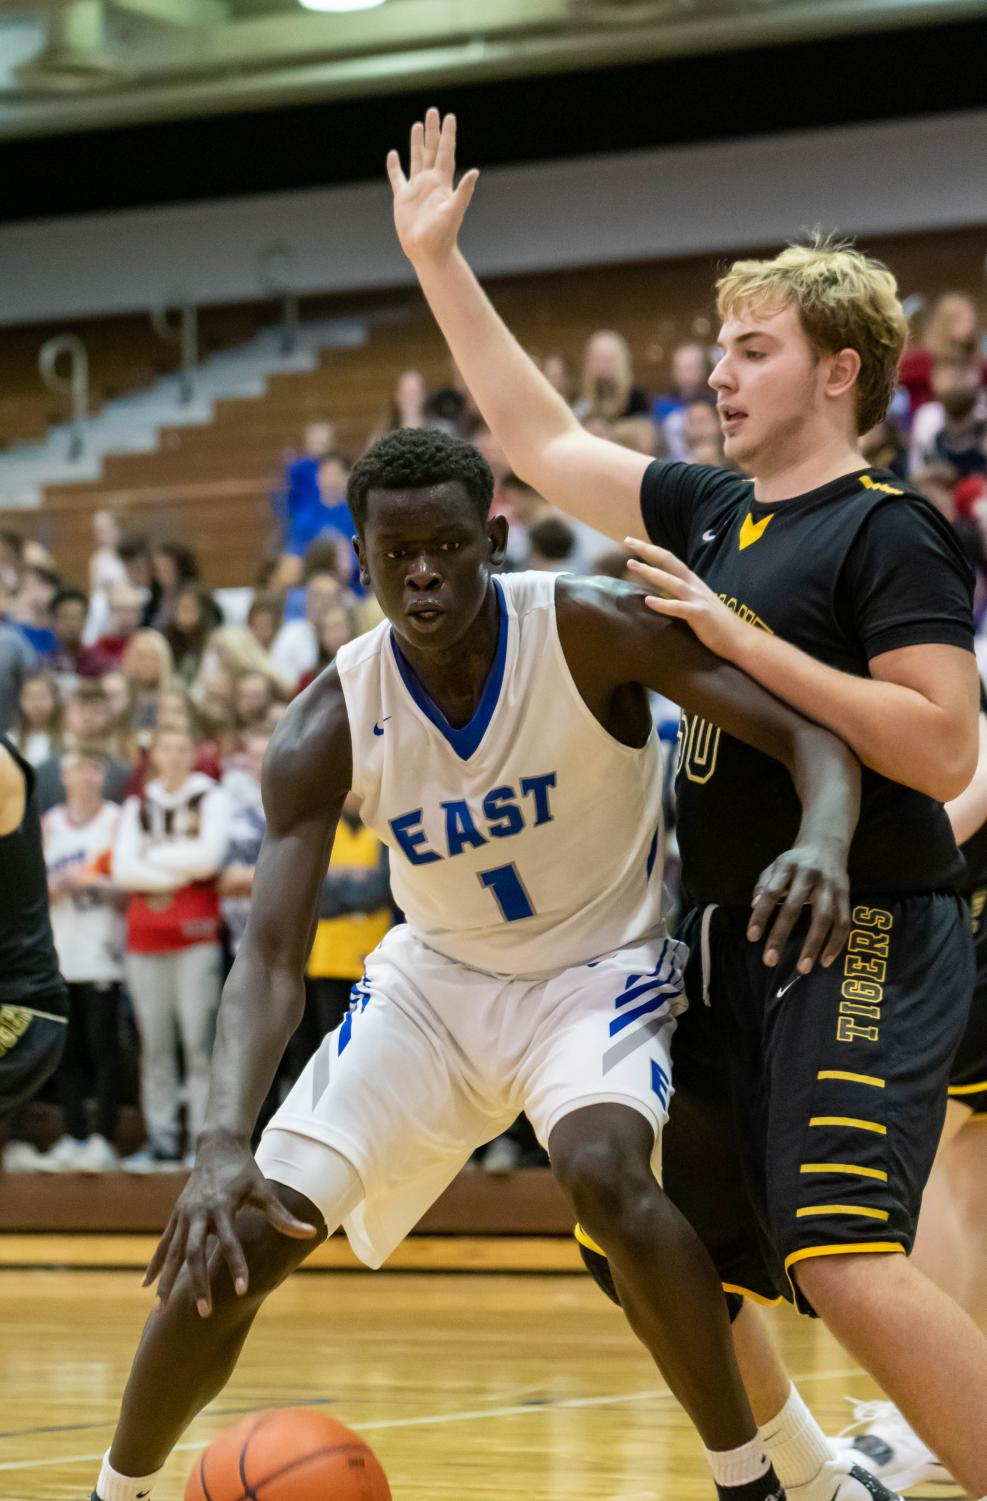 Teny Gakdeng works his way to the basket in the 63-40 win over Fremont on Thursday night.